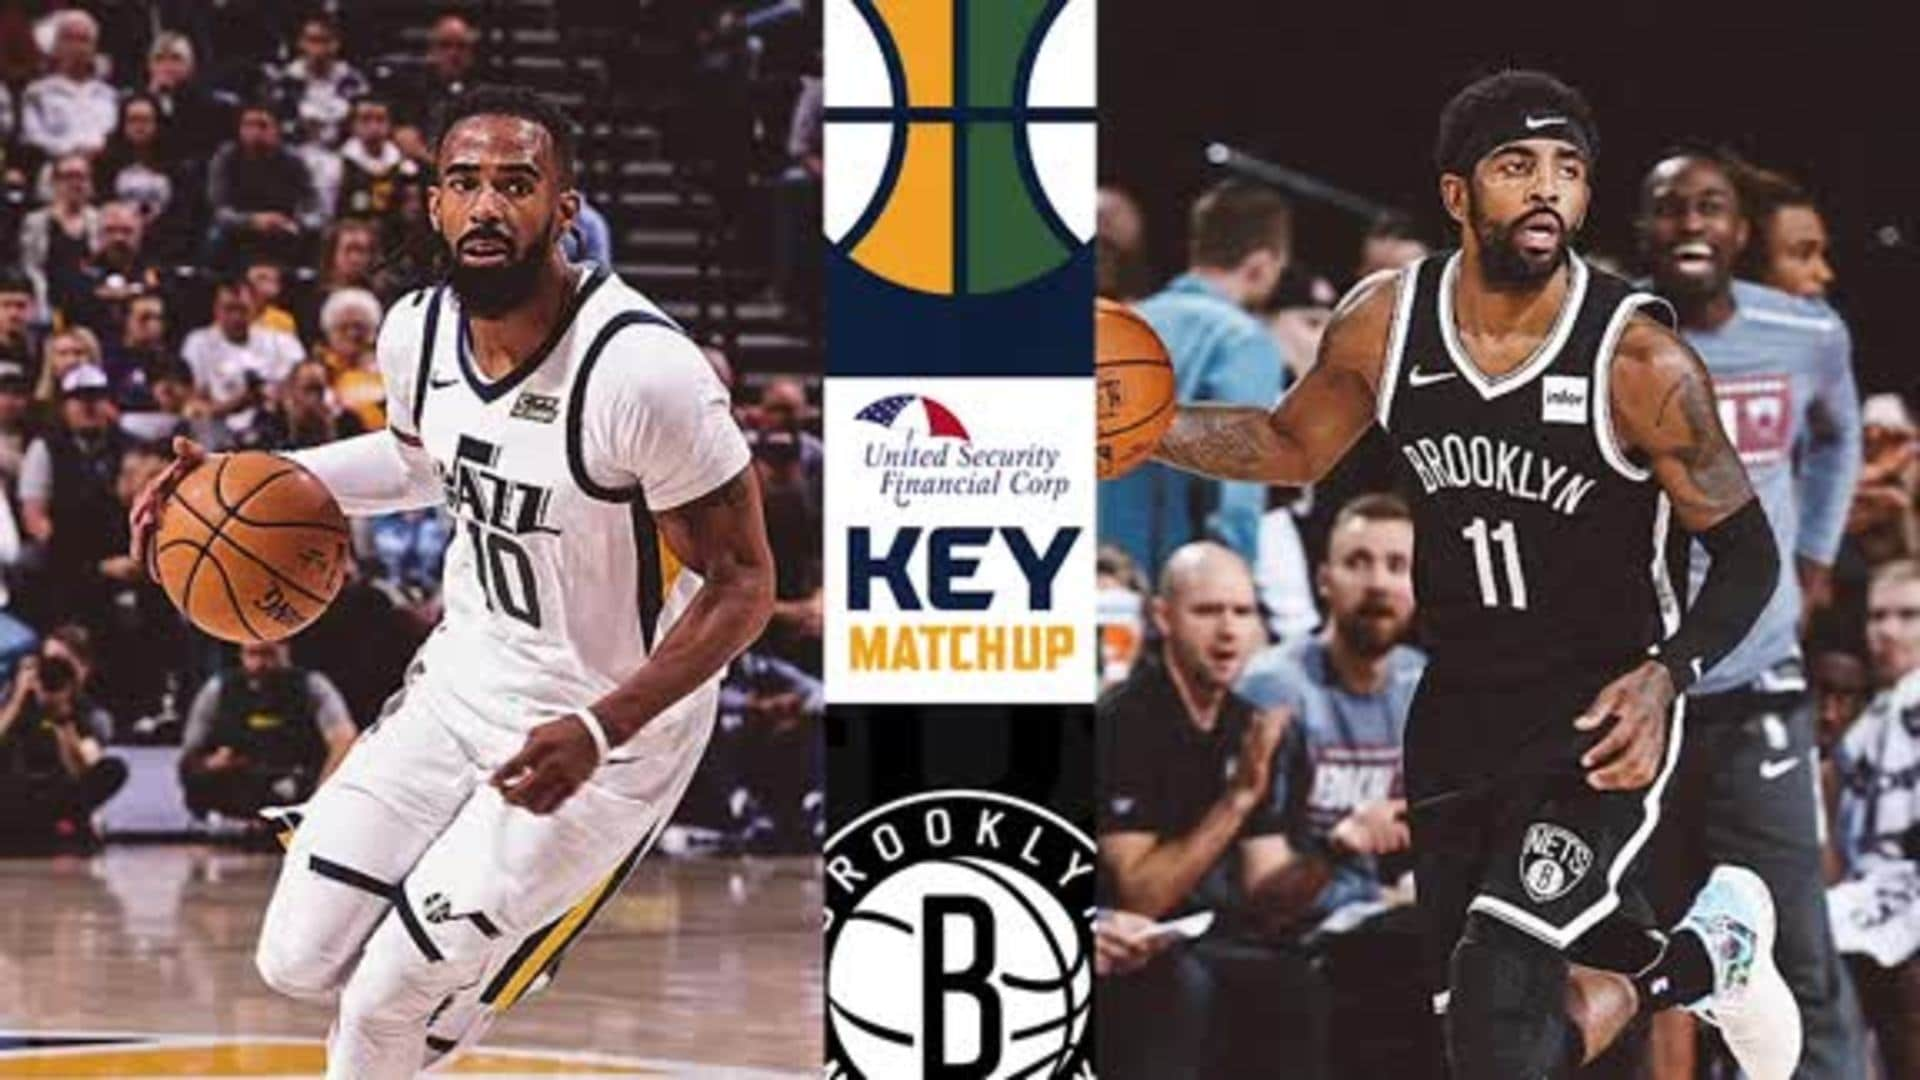 Conley vs. Irving - Key Matchup